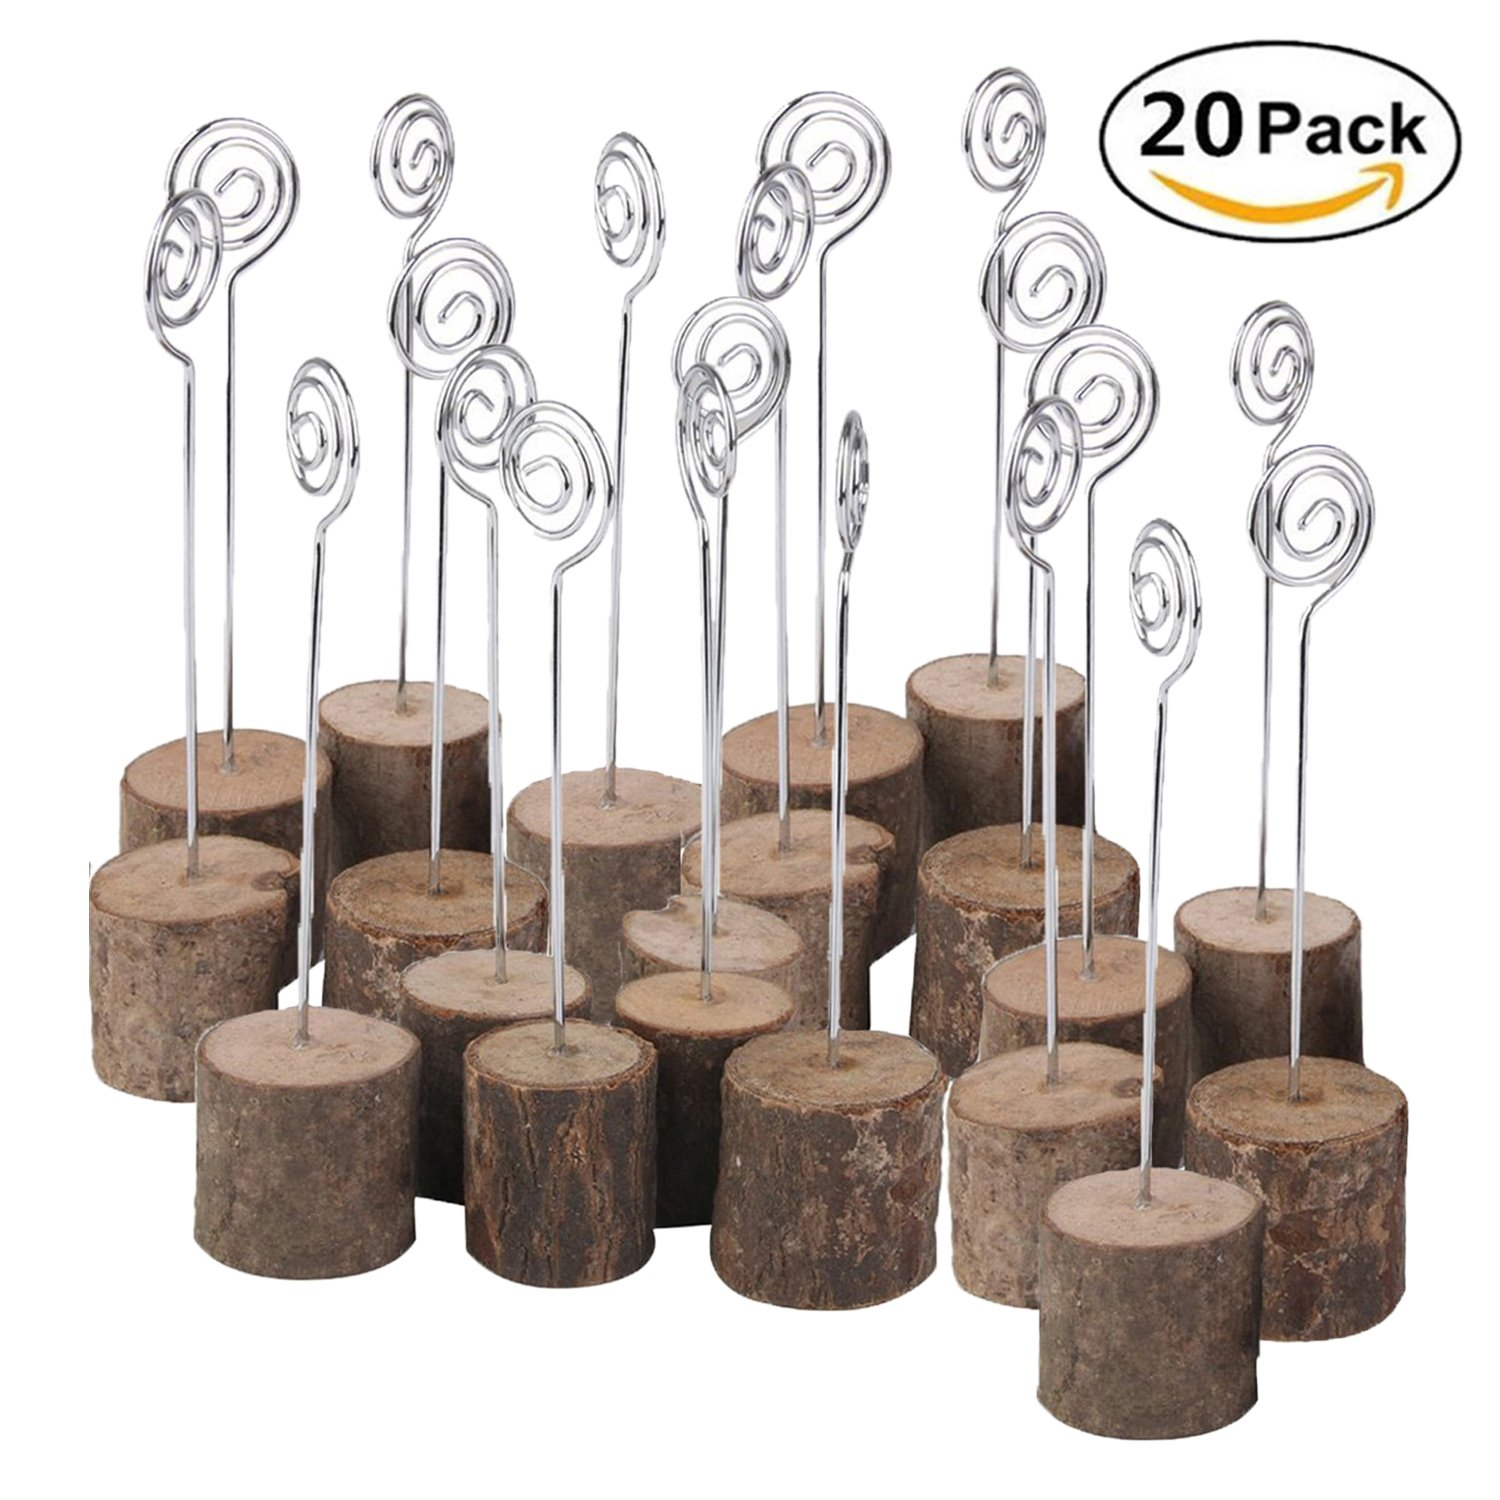 Rustic Real Wood Base Wedding Table Name Number Holder Party Decoration Card Holders Picture Memo Note Photo Clip Holder (20 PCS)